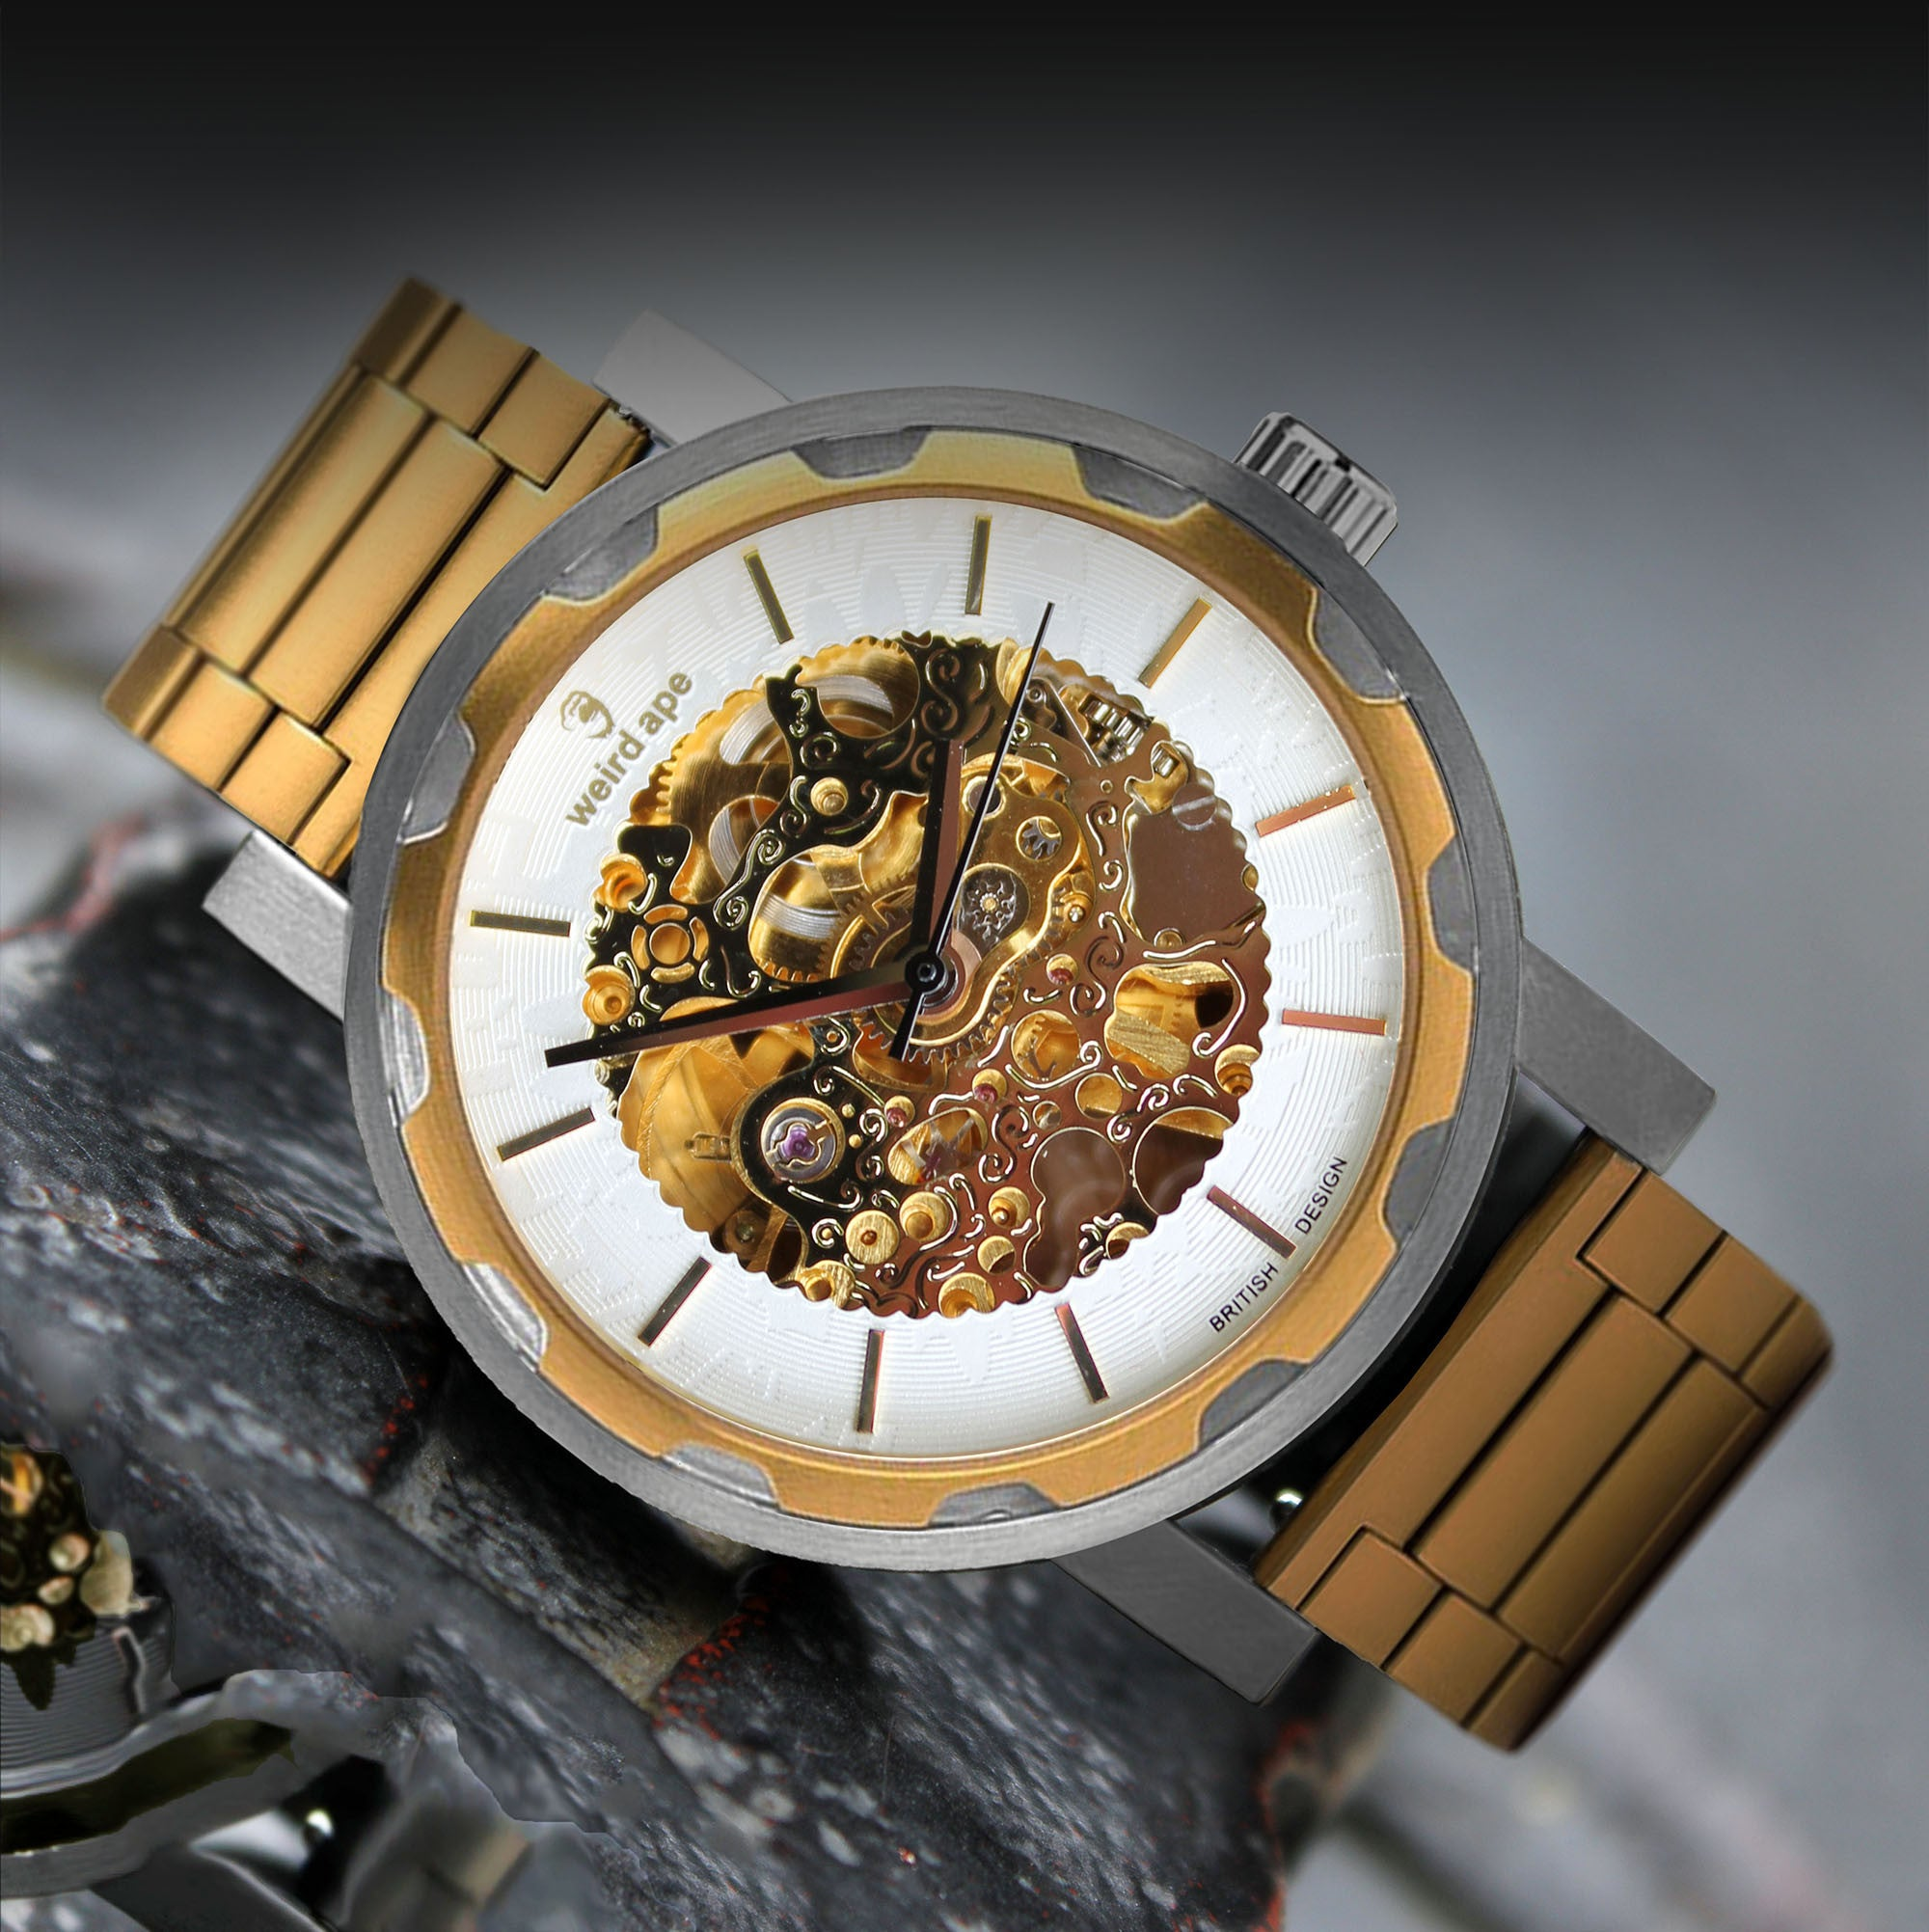 A picture of a gold mechanical watch with a gold steel strap.